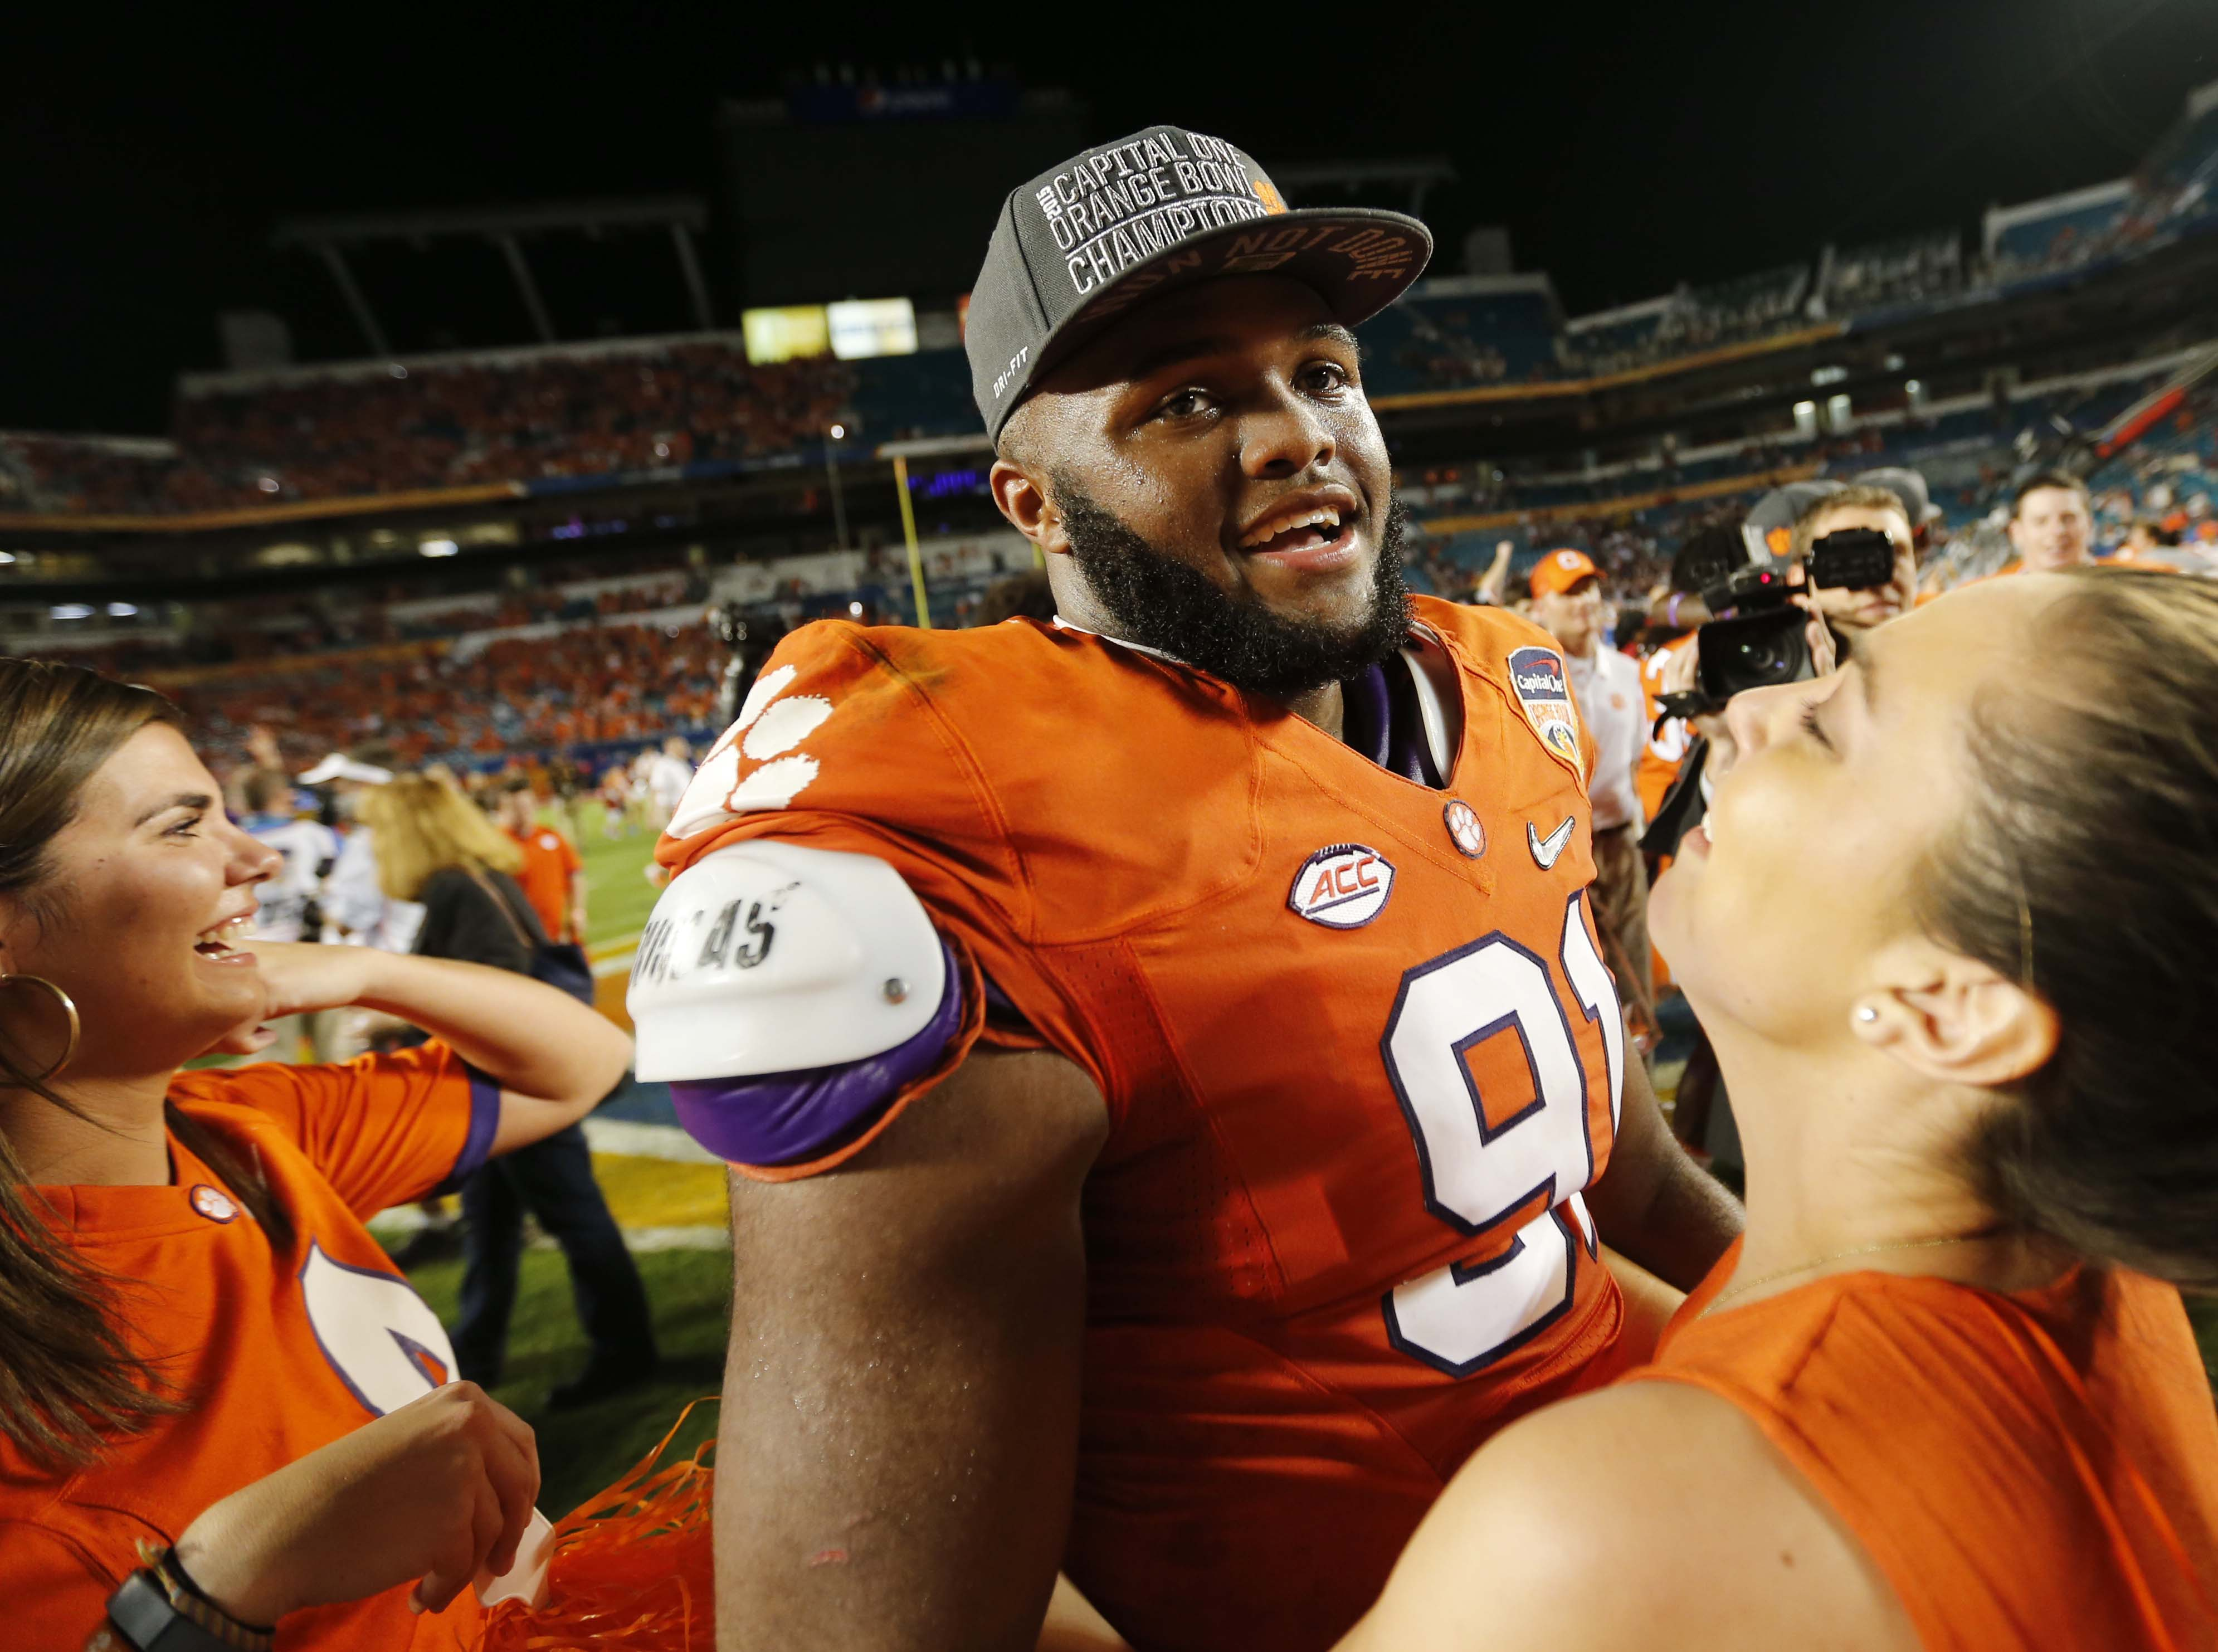 Clemson defensive lineman Austin Bryant (91) is congratulated on the field after his team won the Orange Bowl NCAA college football semifinal playoff game against Oklahoma, Thursday, Dec. 31, 2015, in Miami Gardens, Fla. Clemson defeated Oklahoma 37-17. (